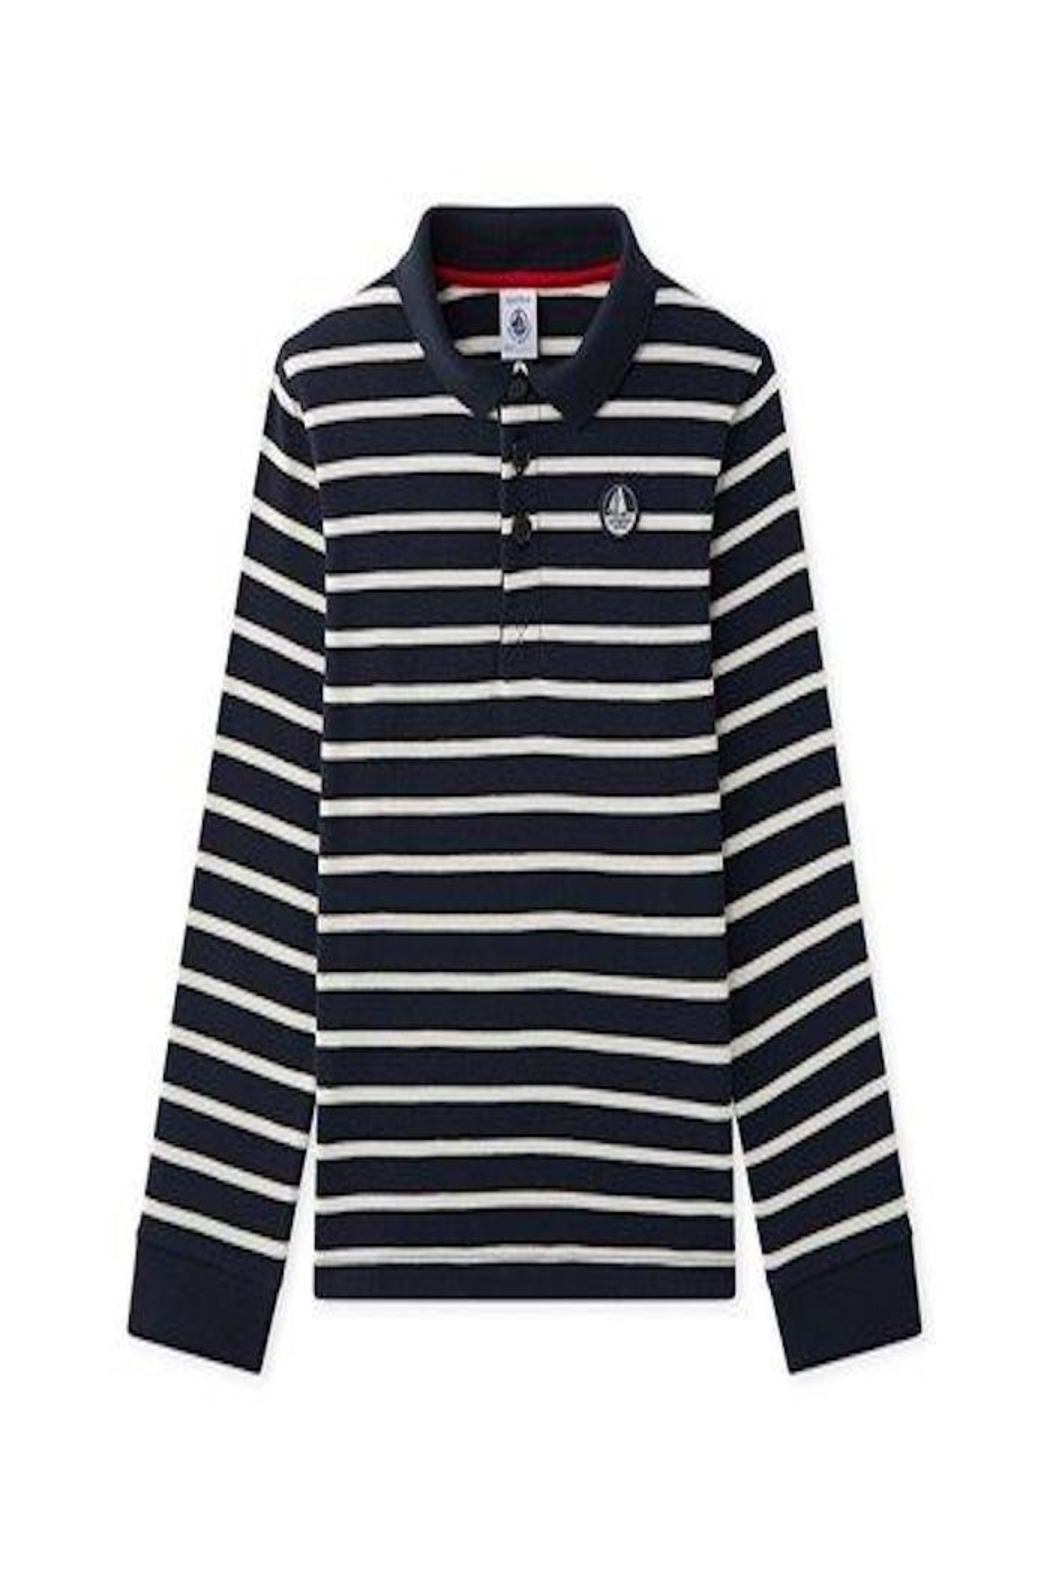 petit bateau Navy Striped Polo - Main Image